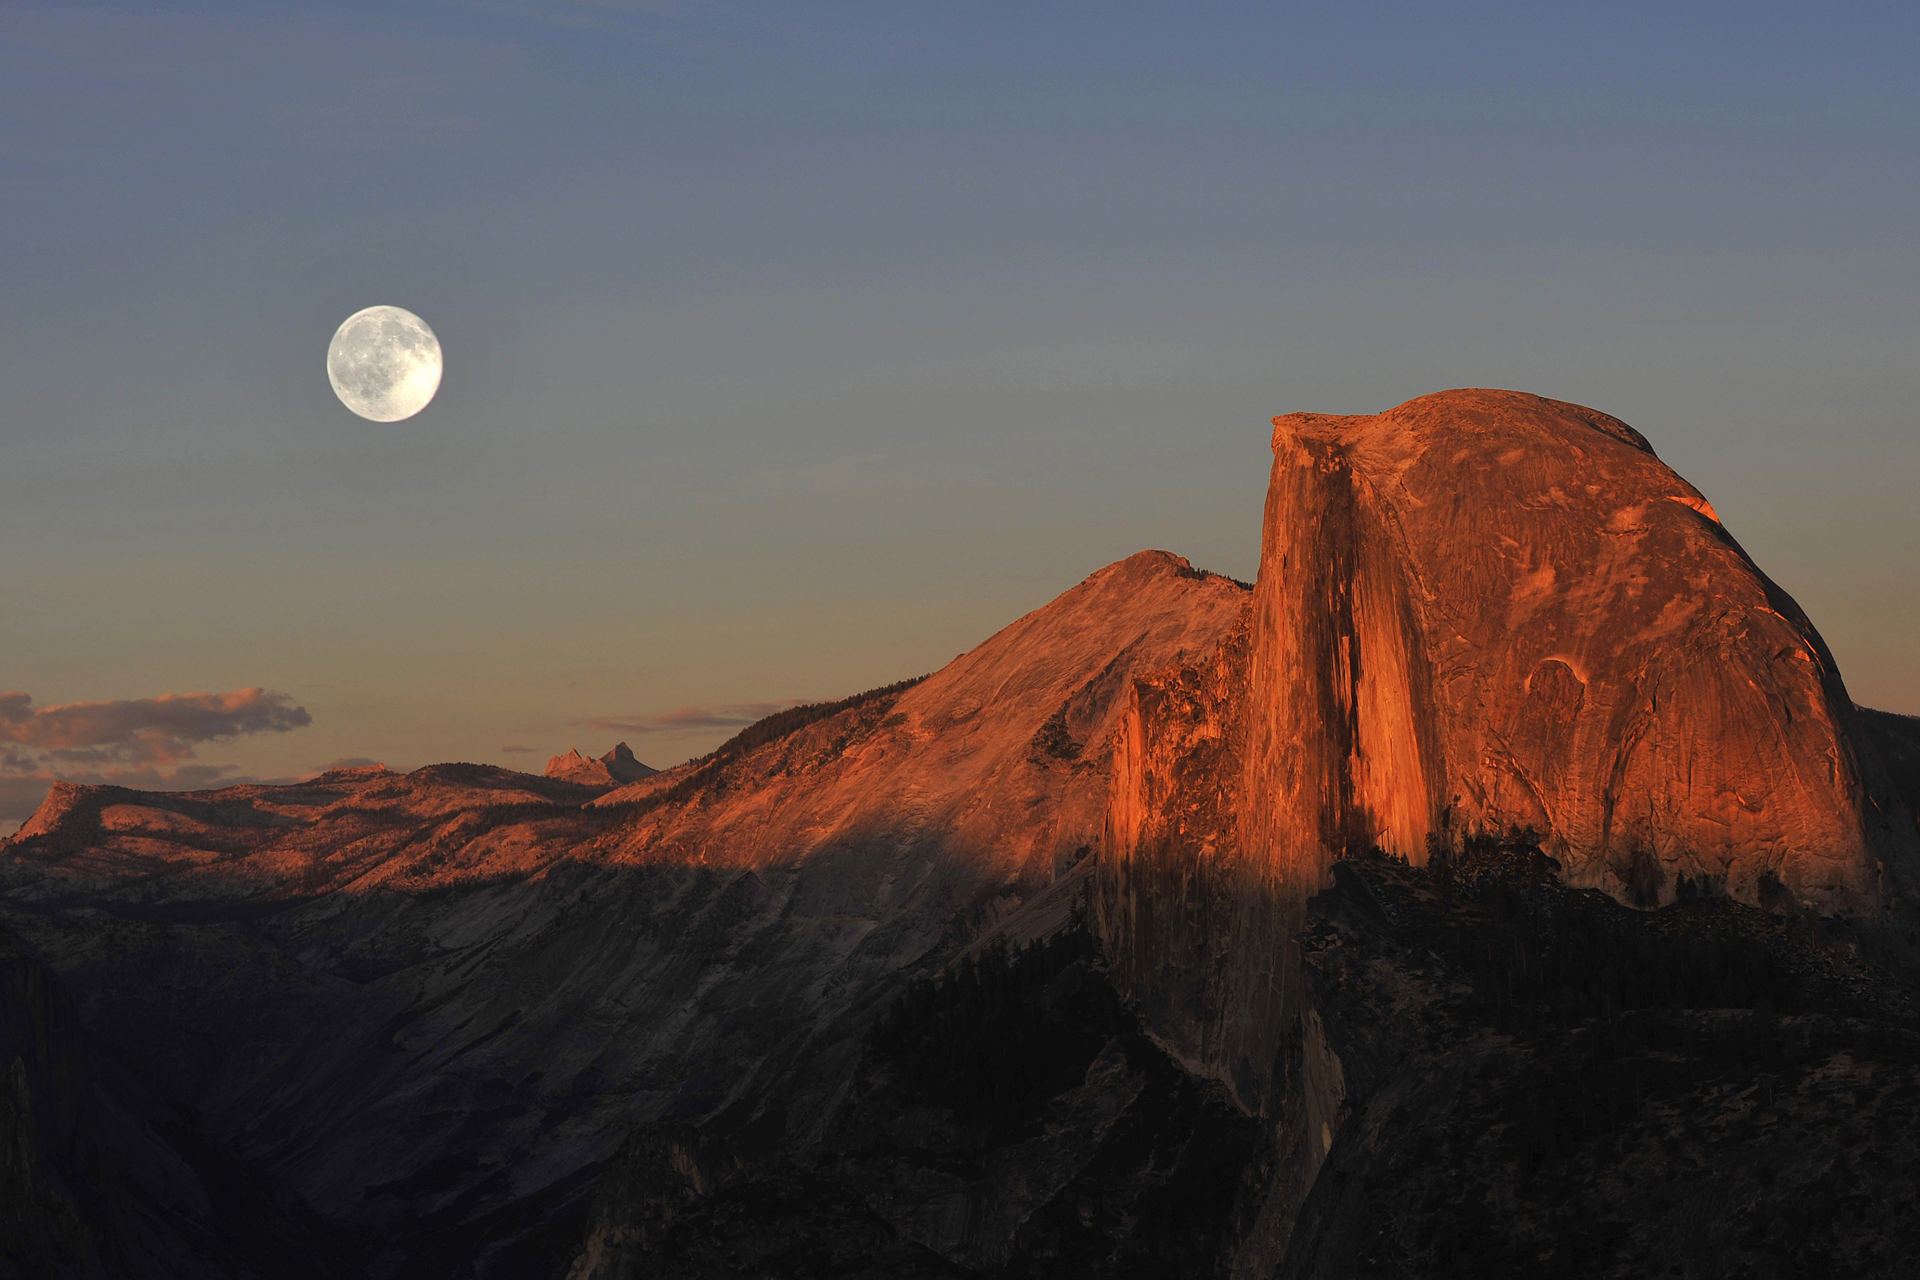 VAUDE-Visions-Wallpapers-for-free-Christian-Pfanzelt-Half-dome-Yosemite-Valley-North-America-wallpaper-wp48011702